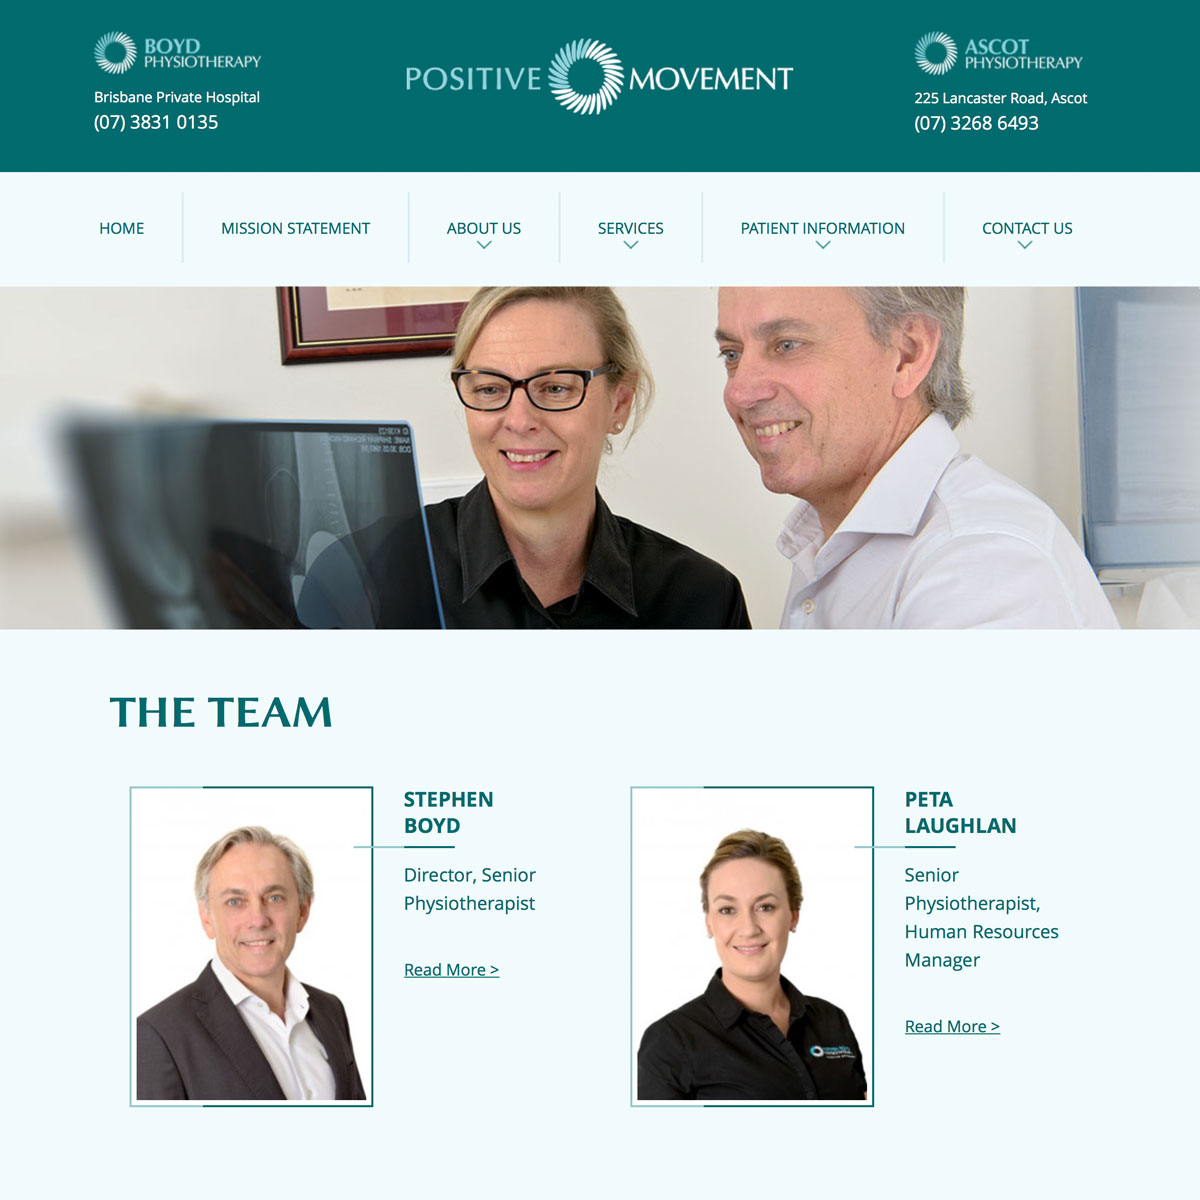 Positive Movement - The Team